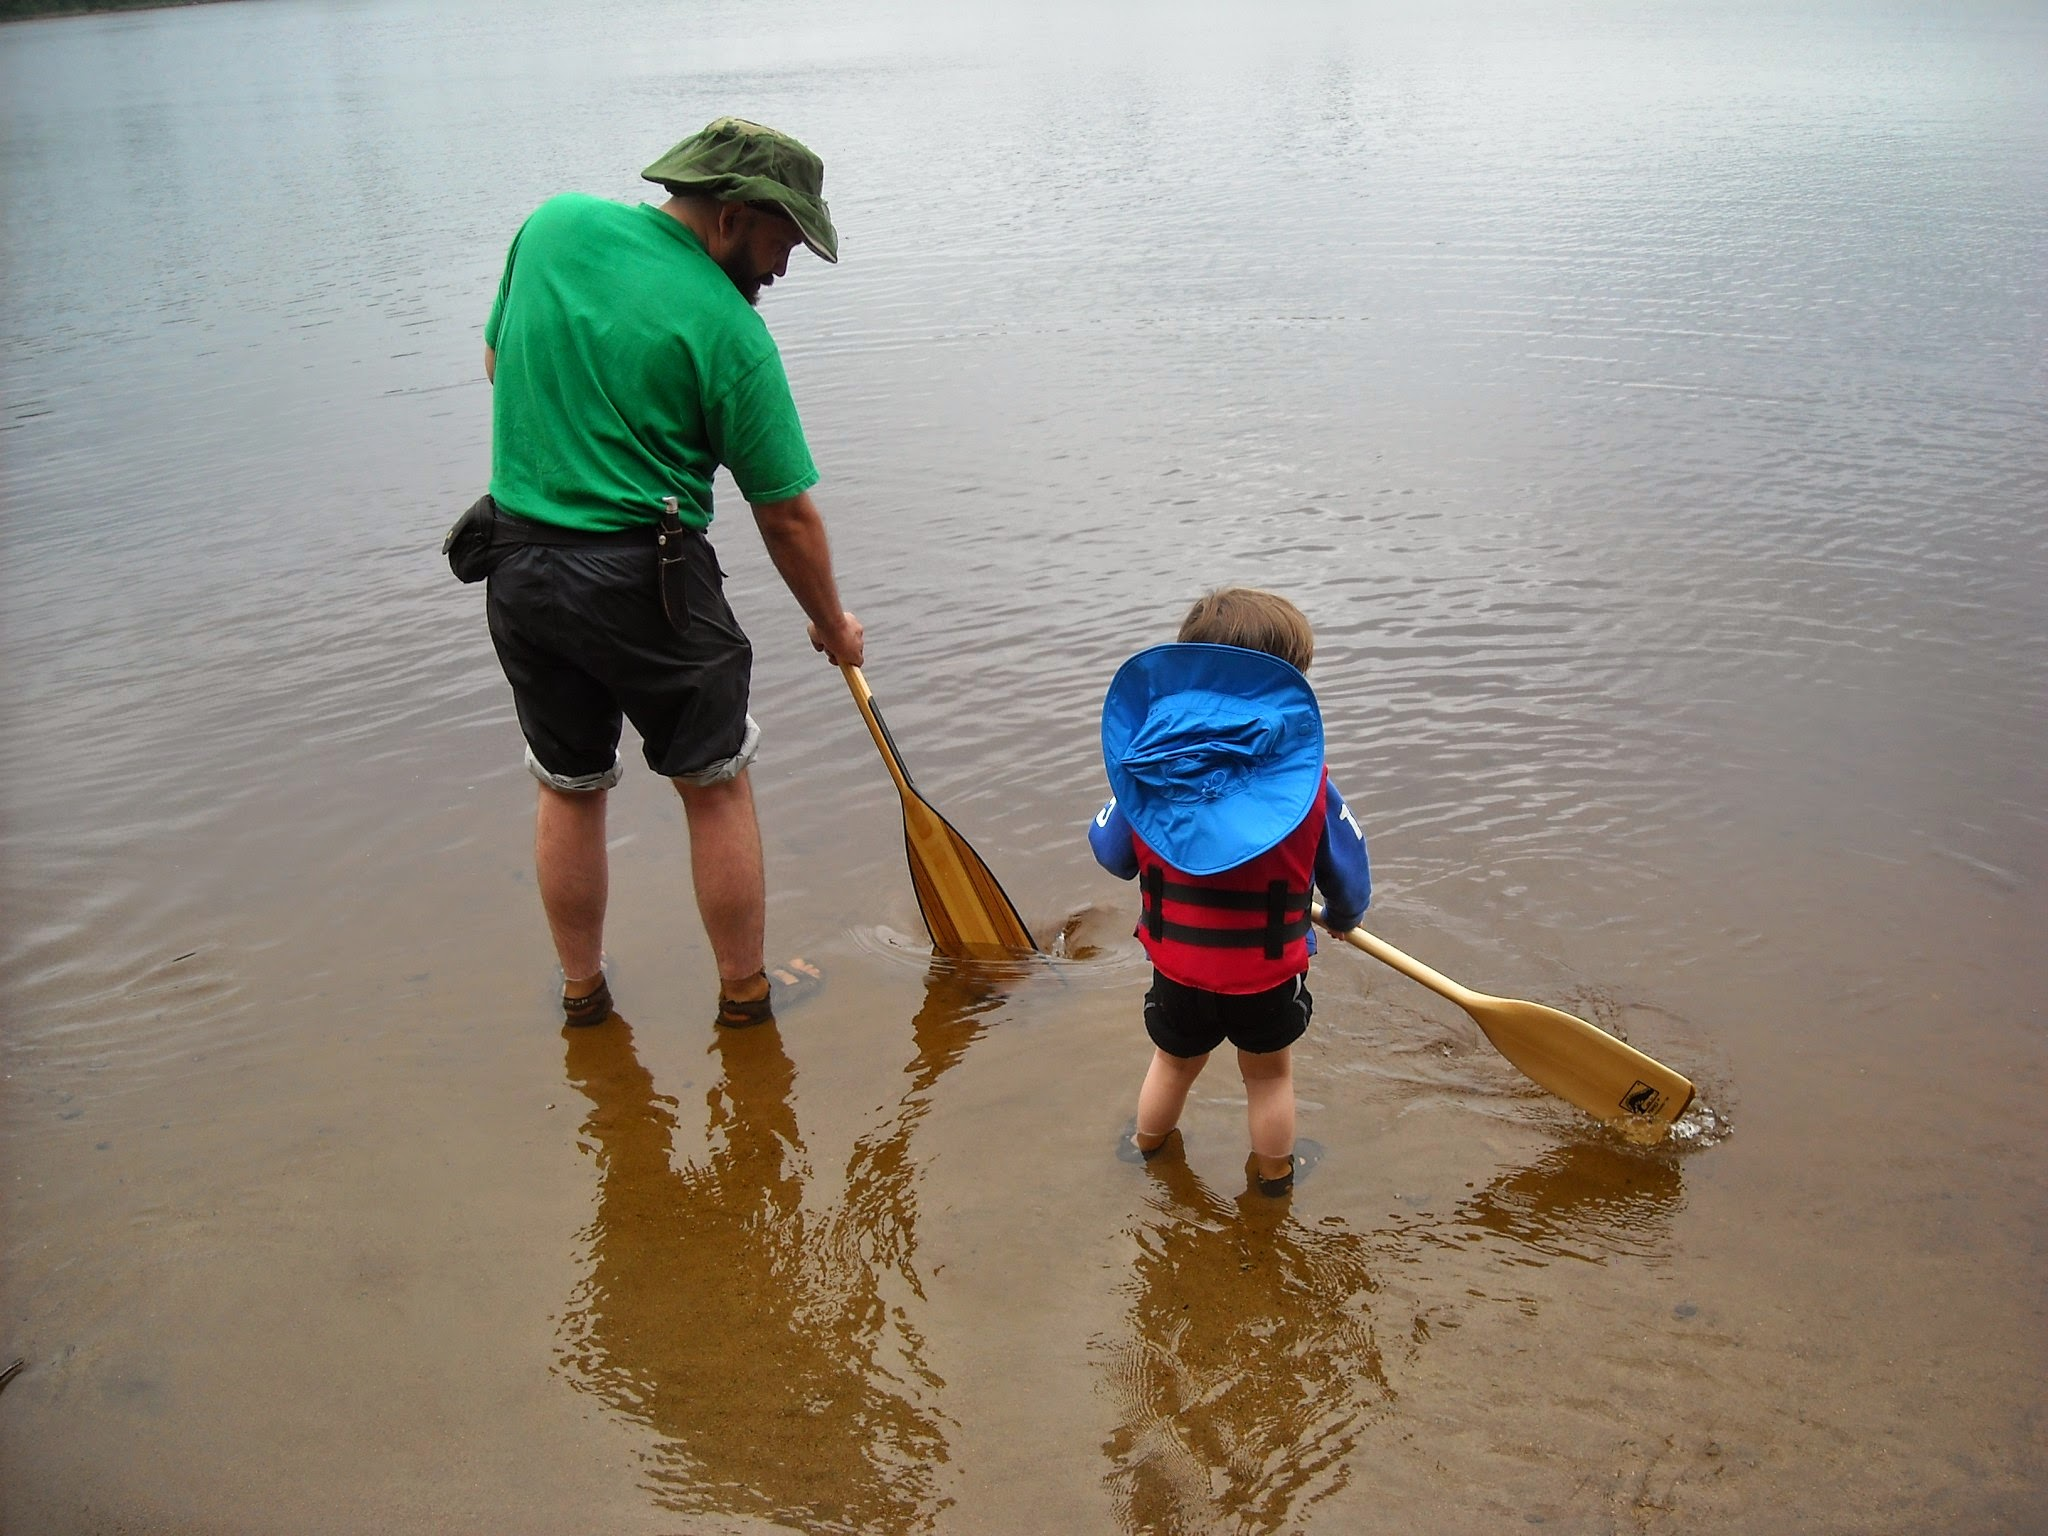 Even without a canoe, sense of adventure and imagination and will get you pretty far.